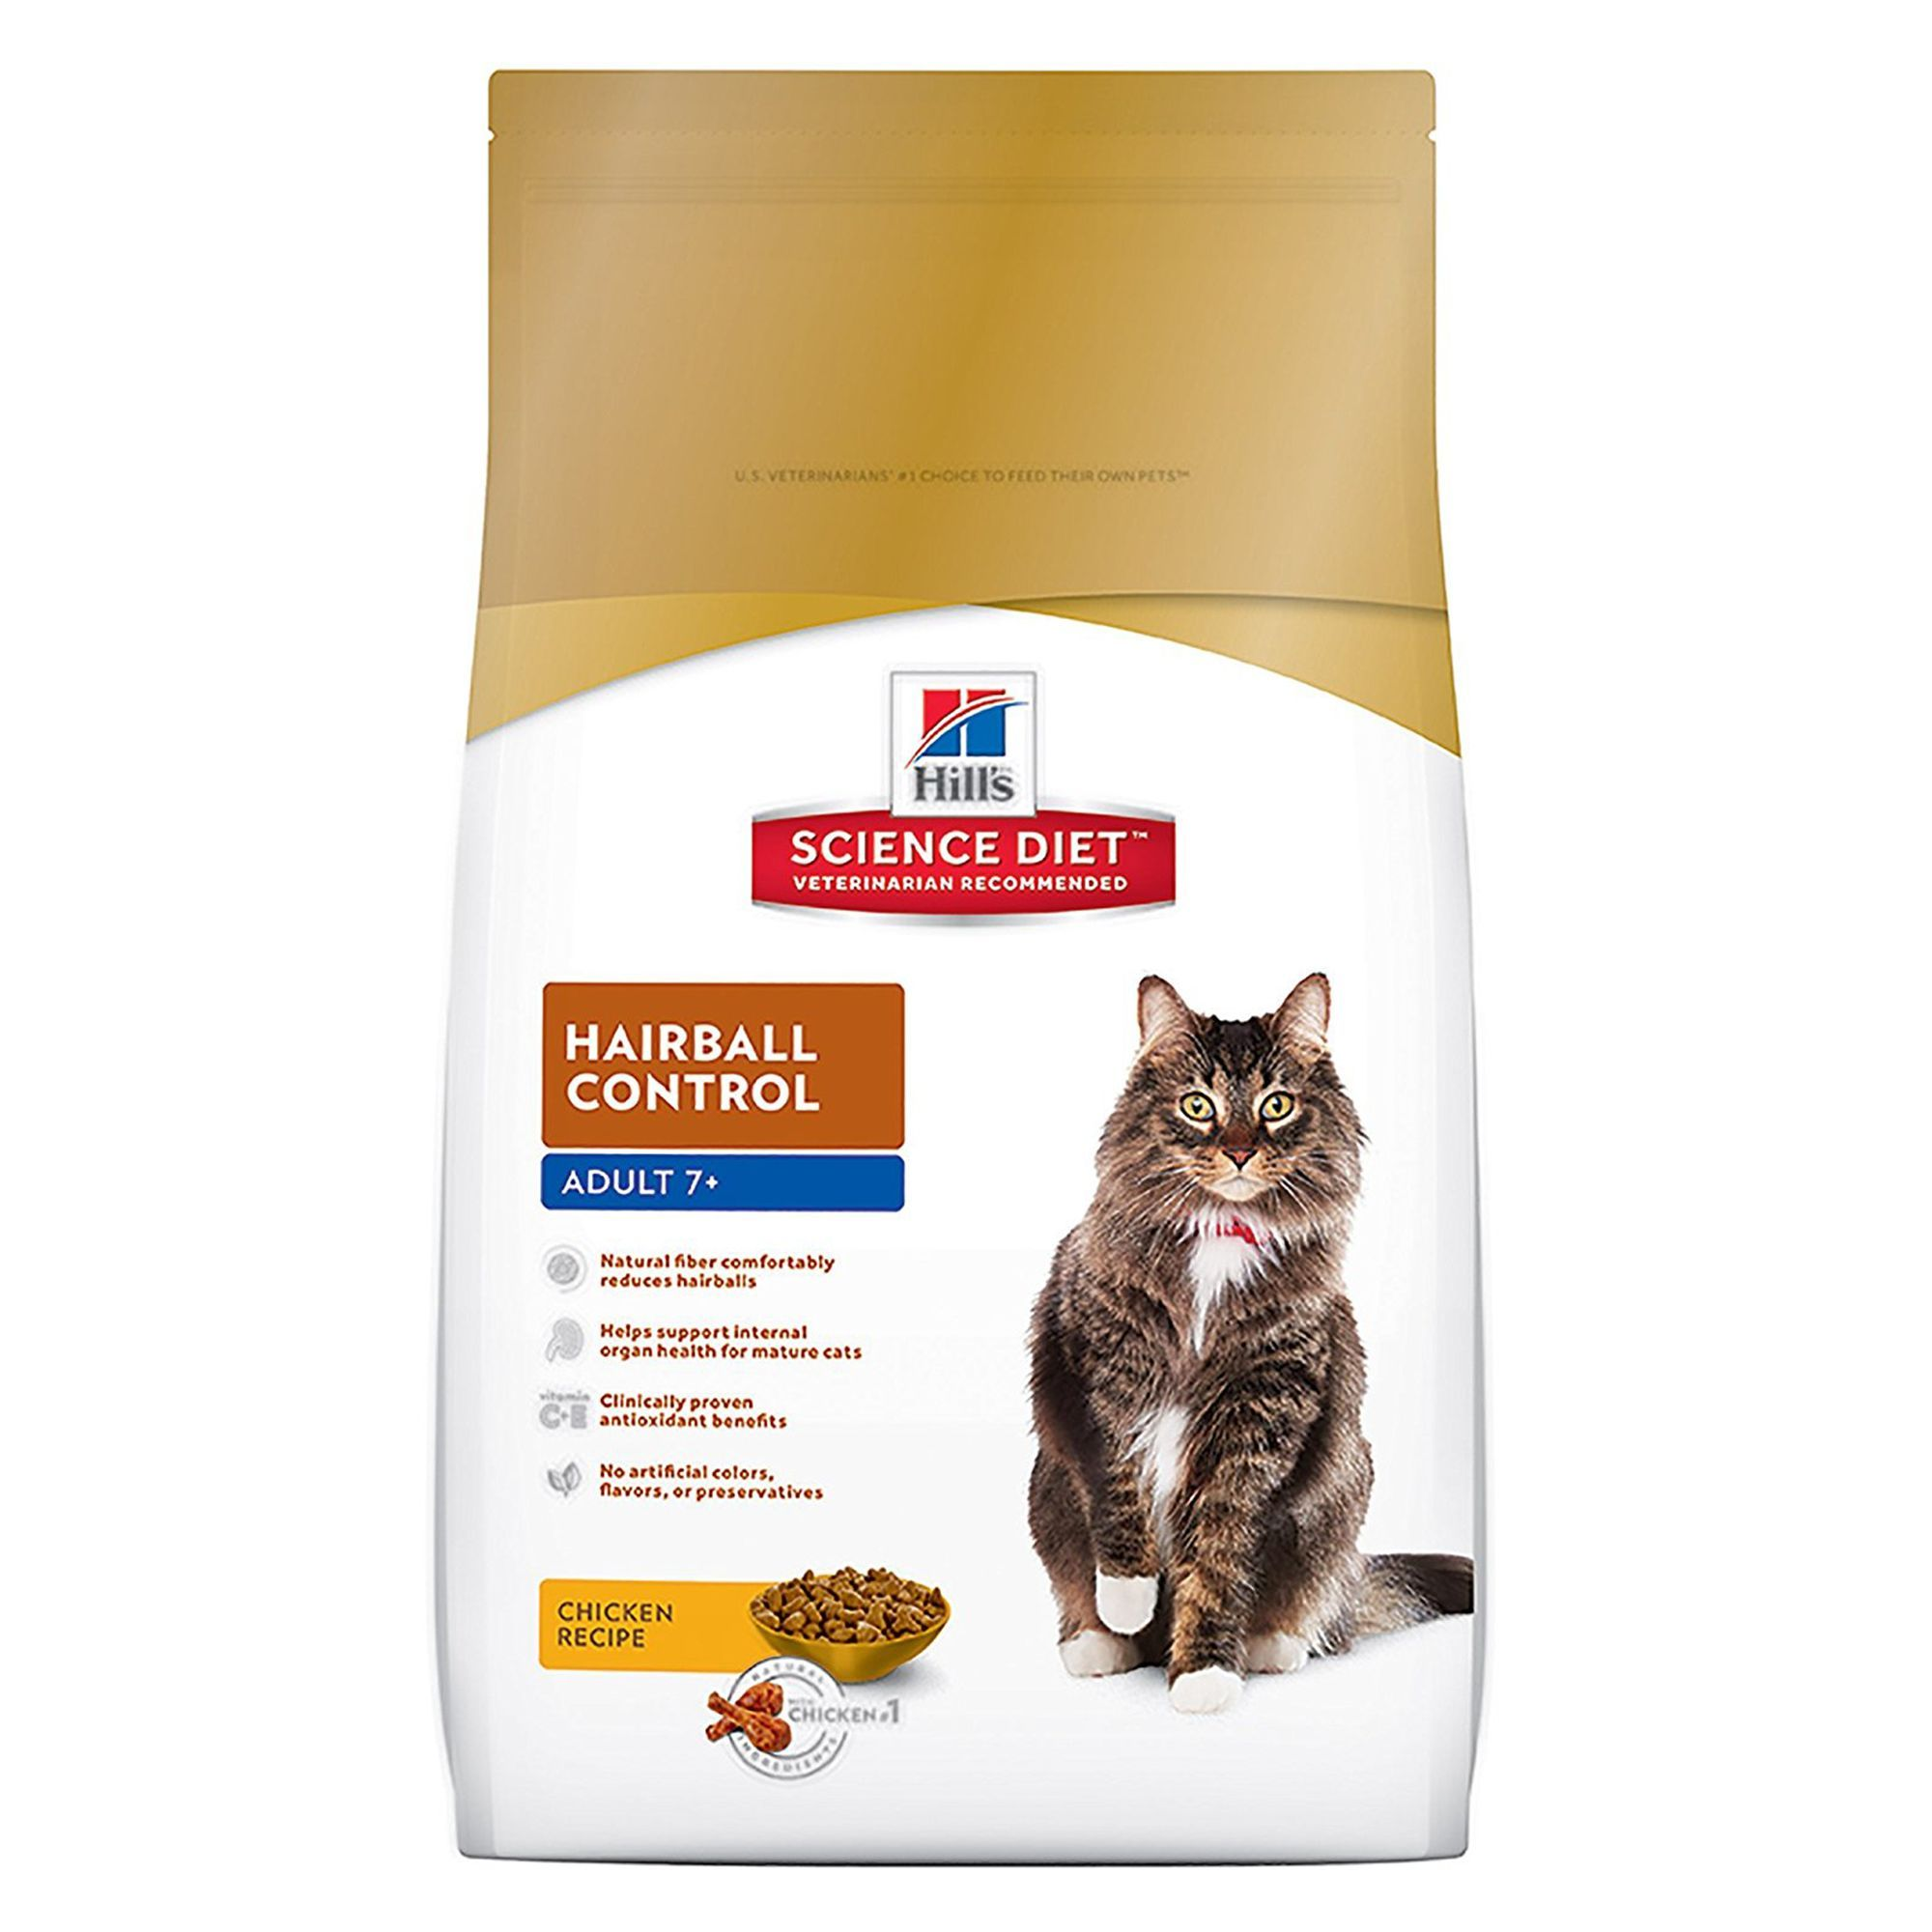 Hill's Science Diet Hairball Control Senior Cat Food